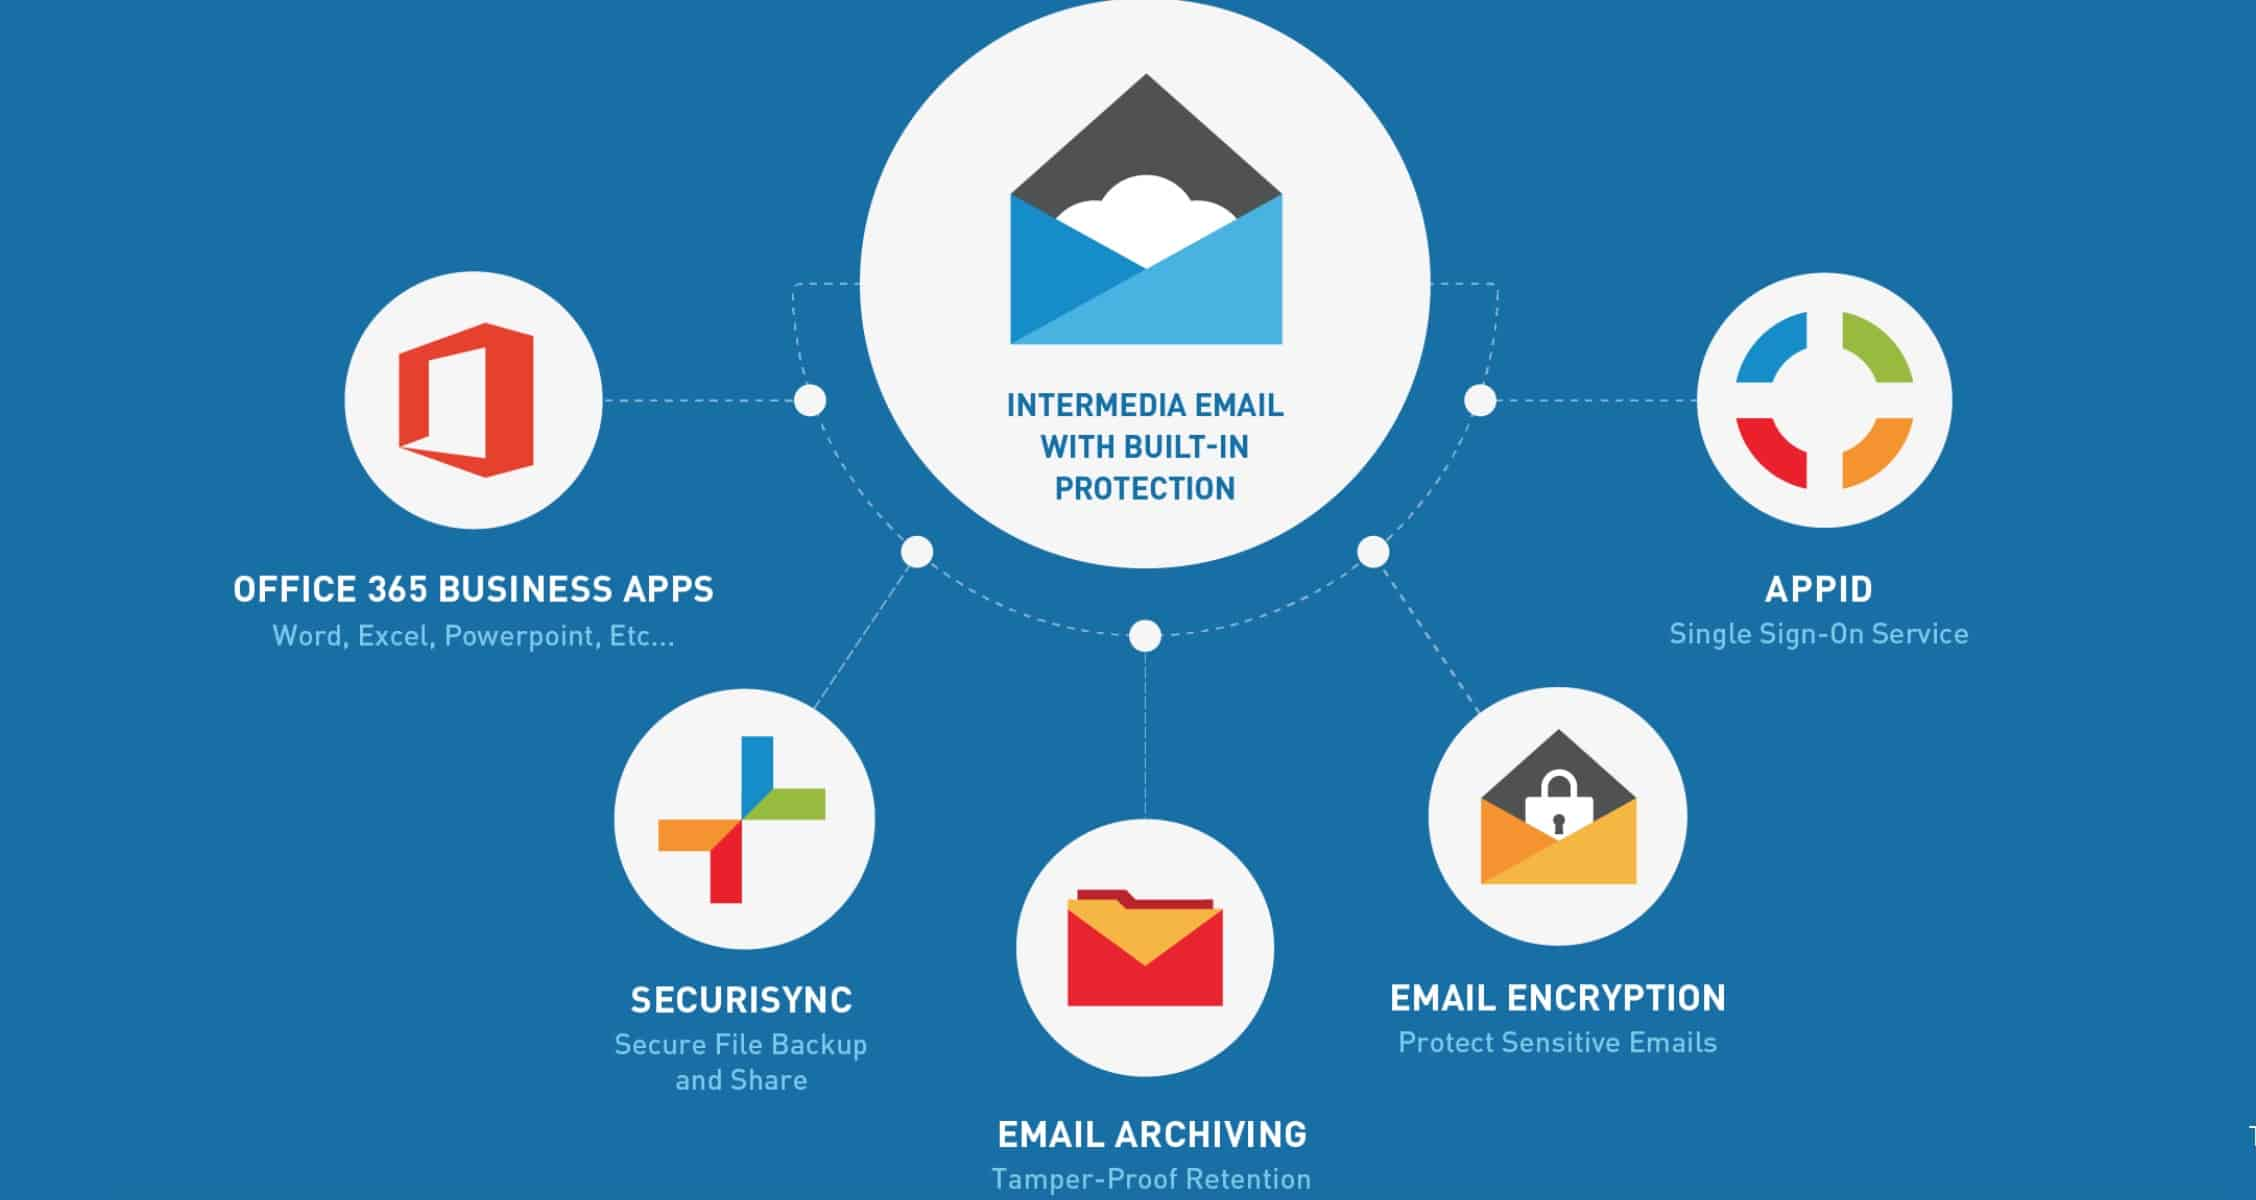 intermedia.net email service